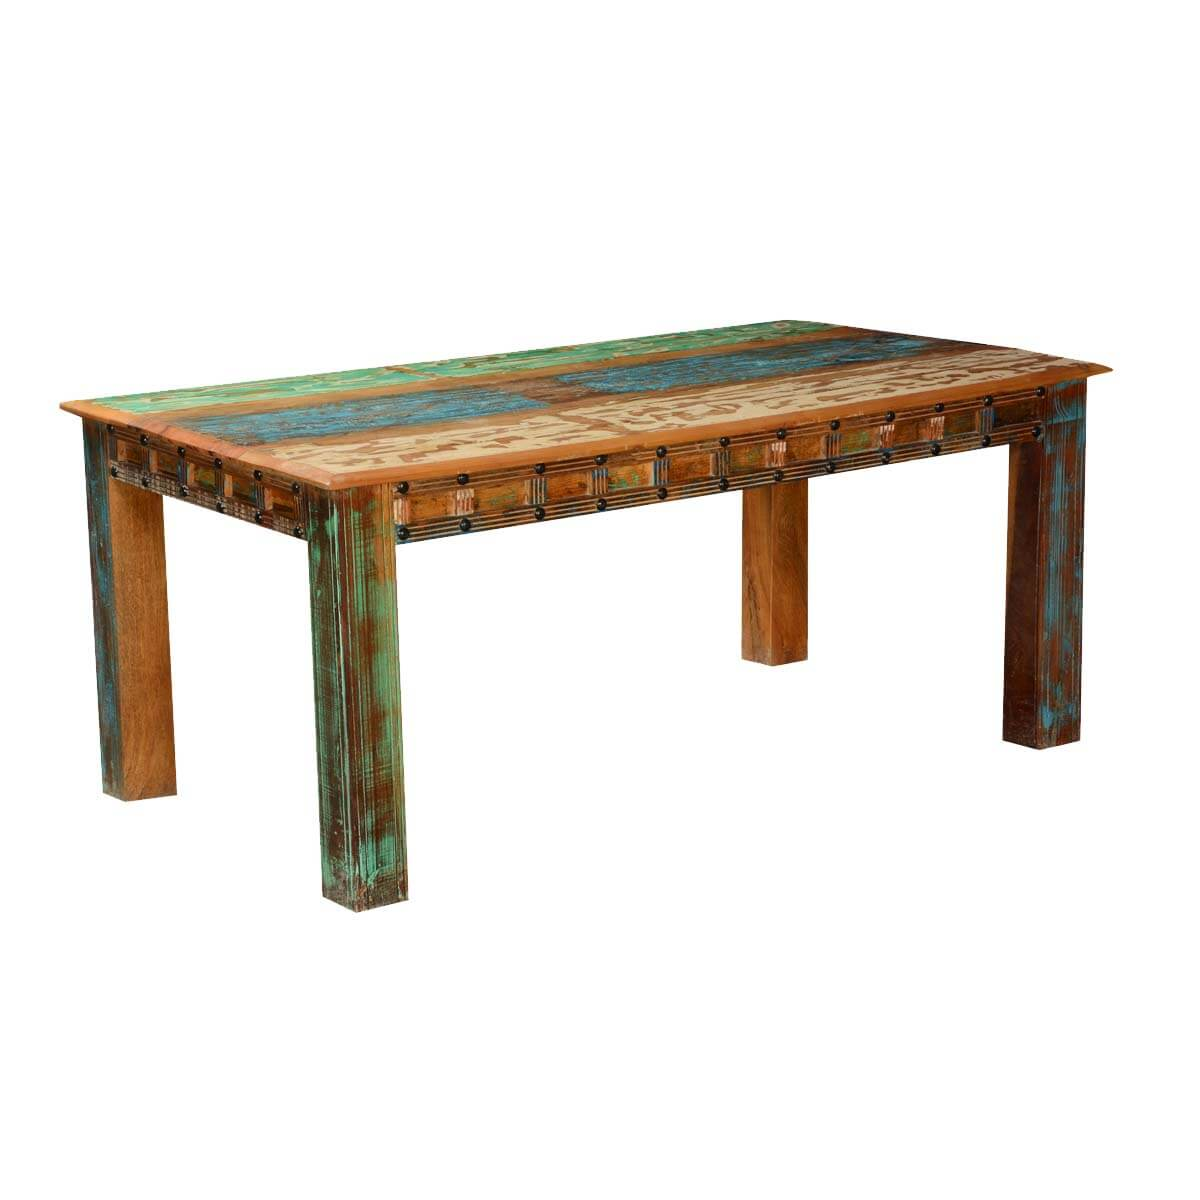 Gothic rustic rainbow reclaimed wood dining table Rustic wood dining table